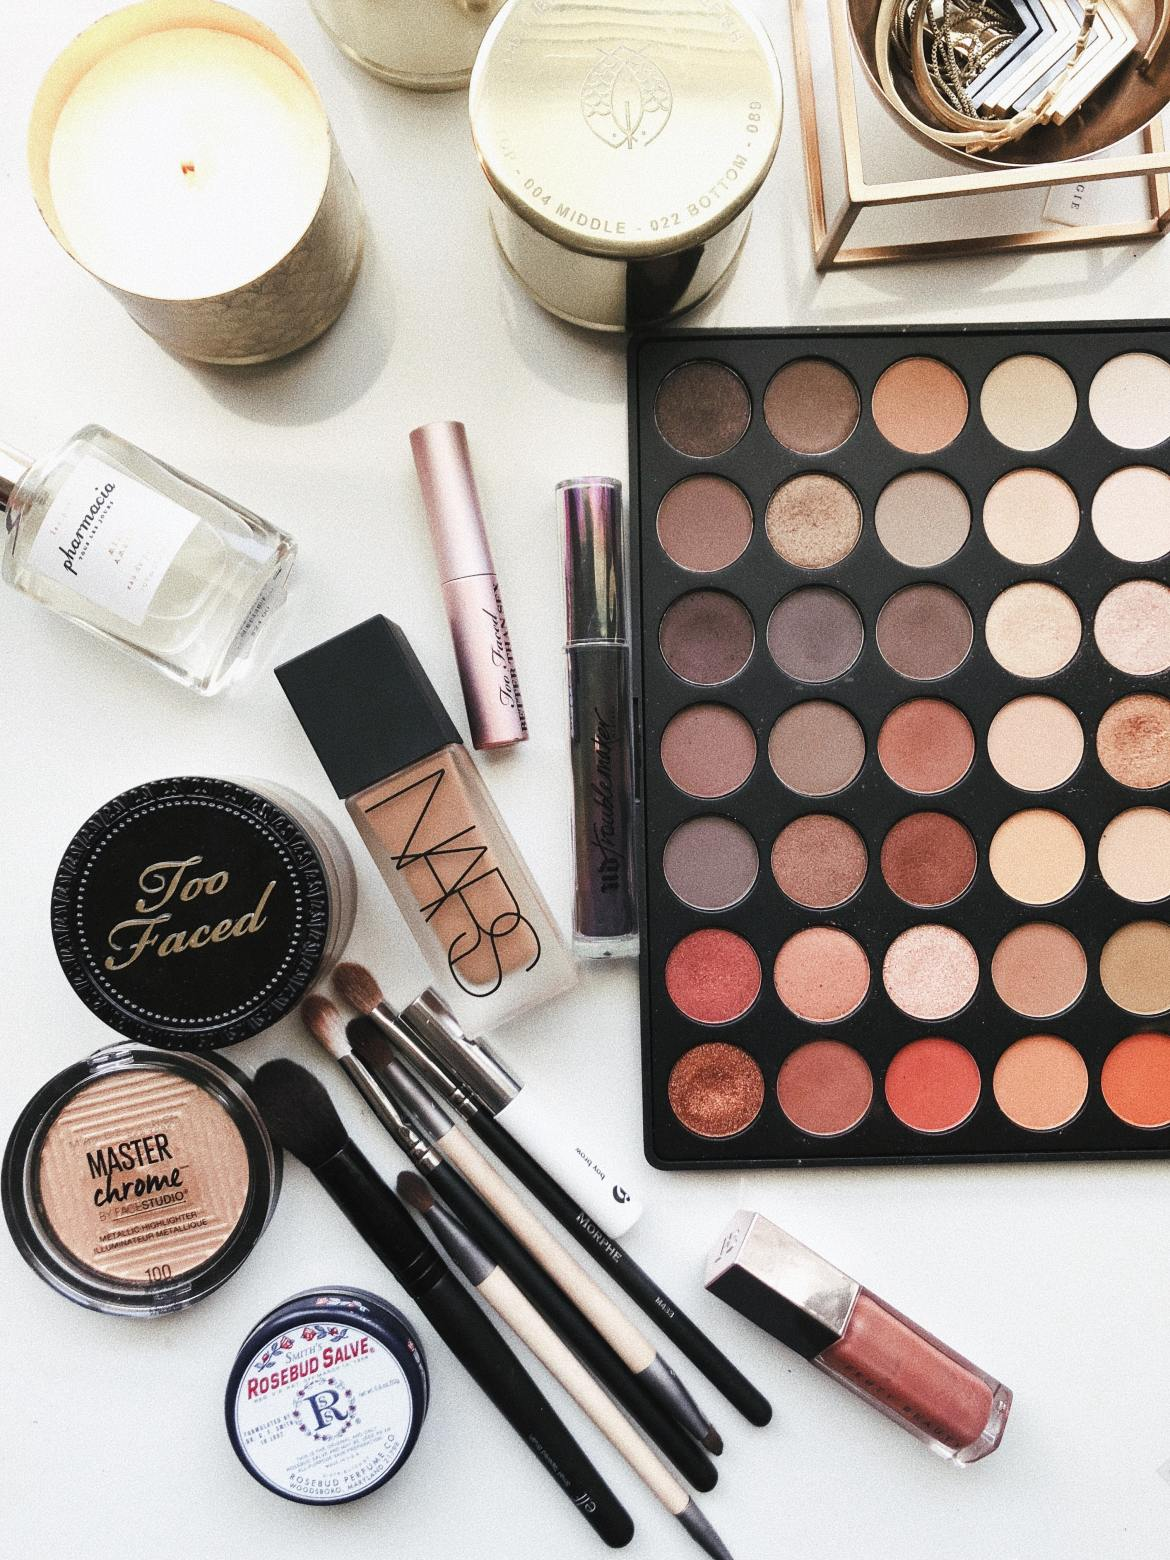 Great Alternatives to Problematic Beauty Brands